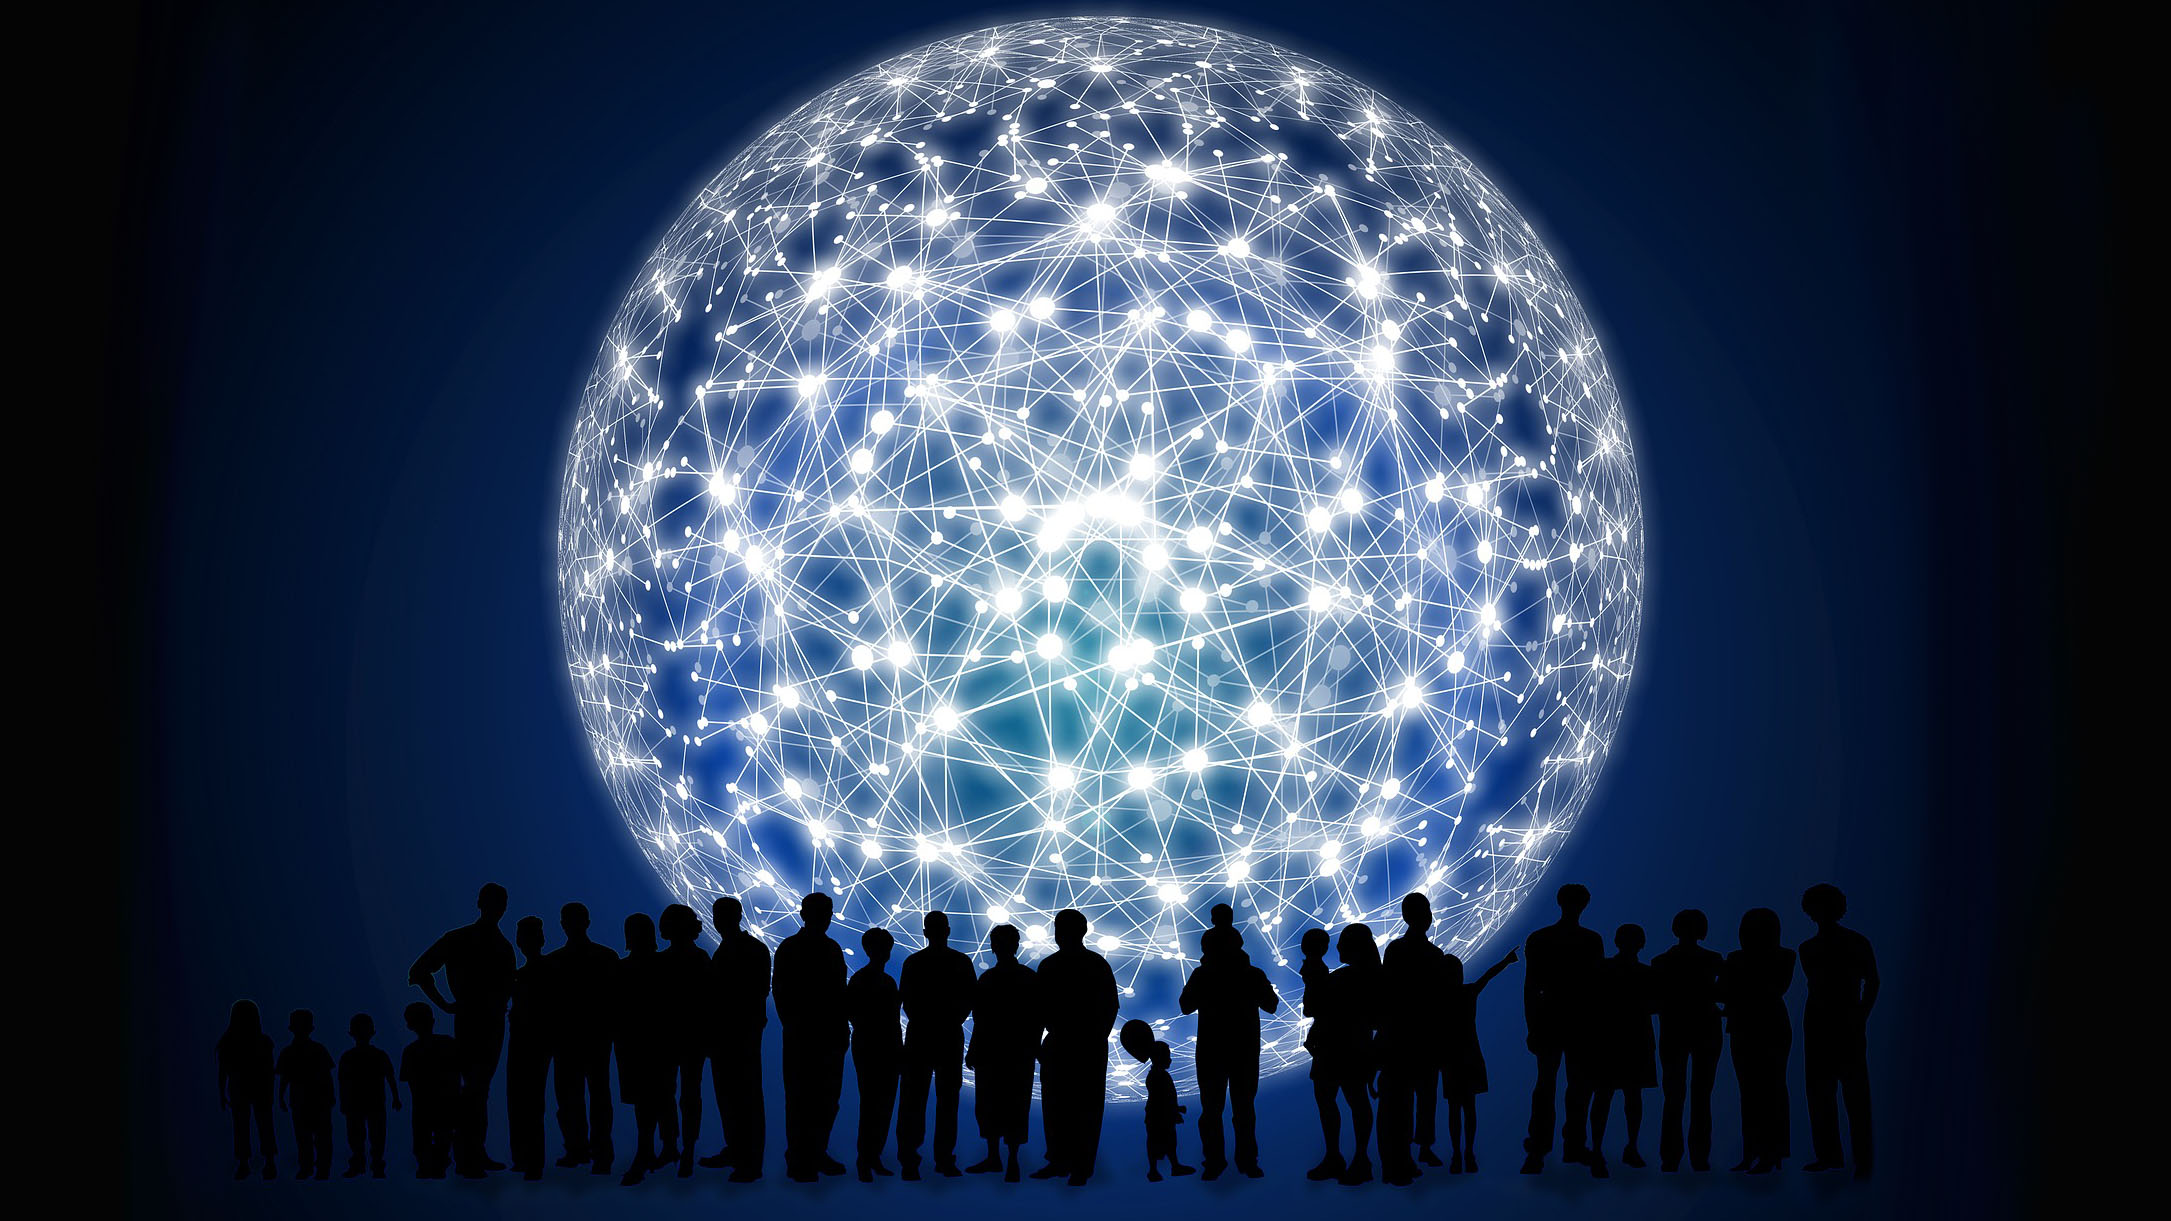 Network of people in front of a giant moon